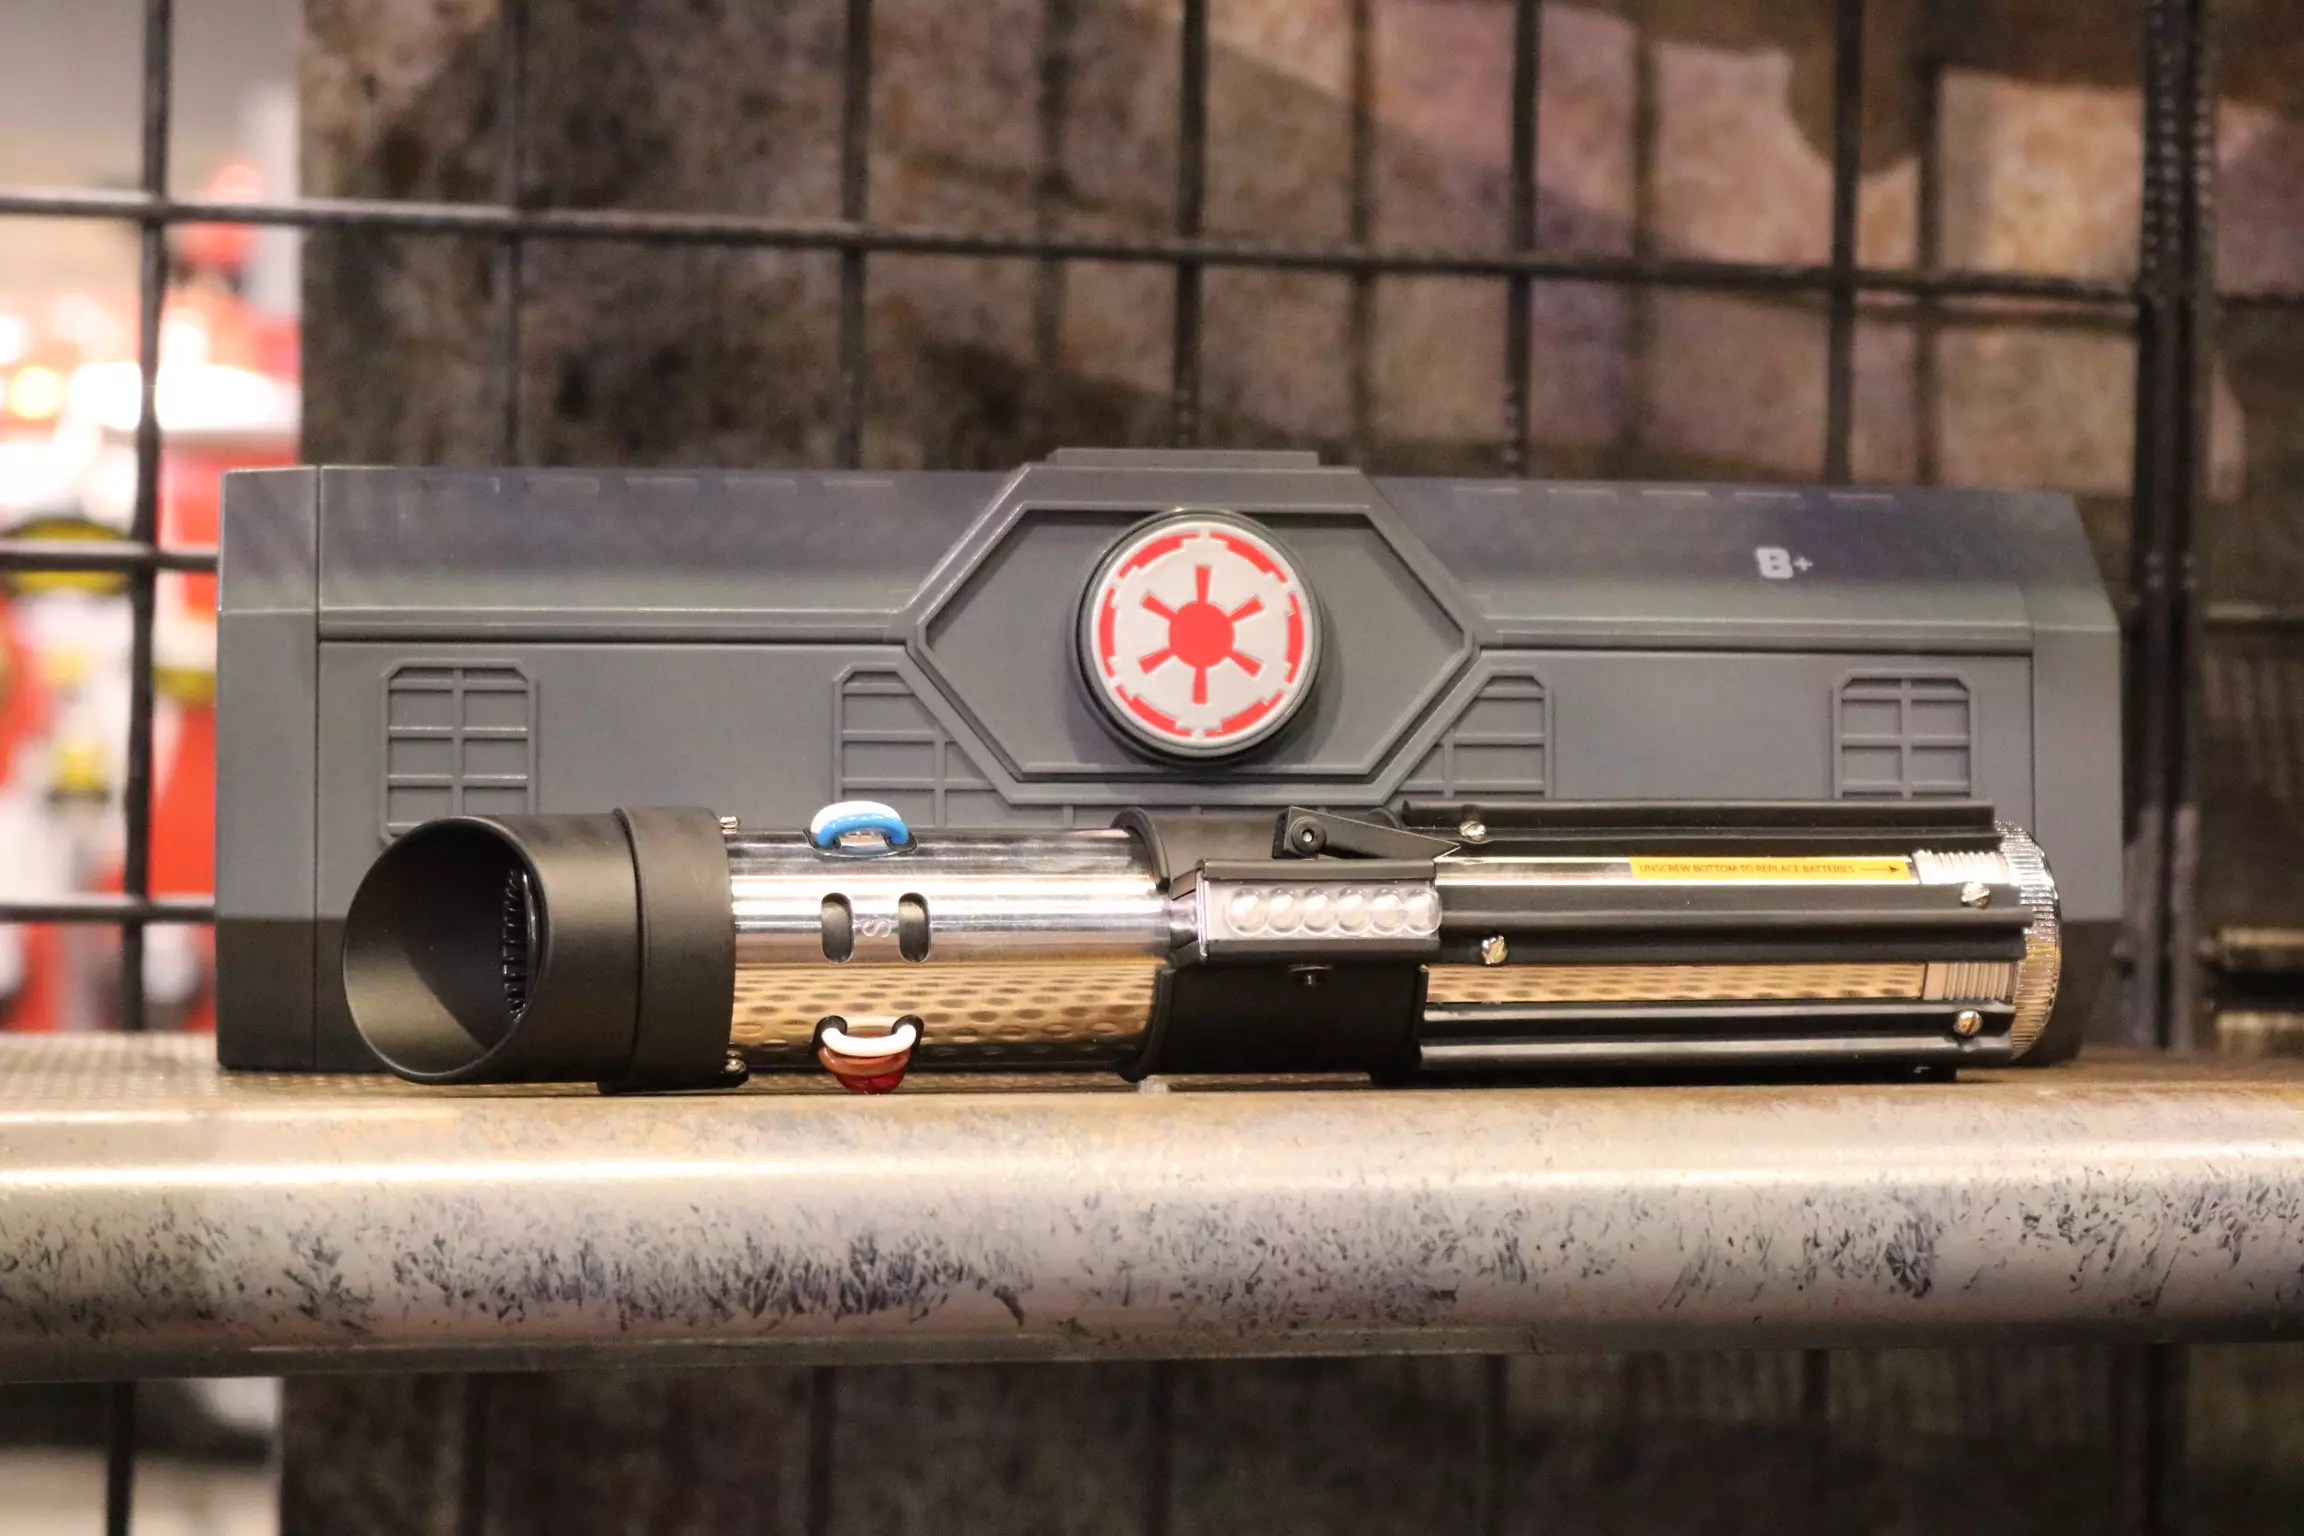 Darth Vader's lightsaber, the most infamous weapon in the galaxy, will be one of the many options available.